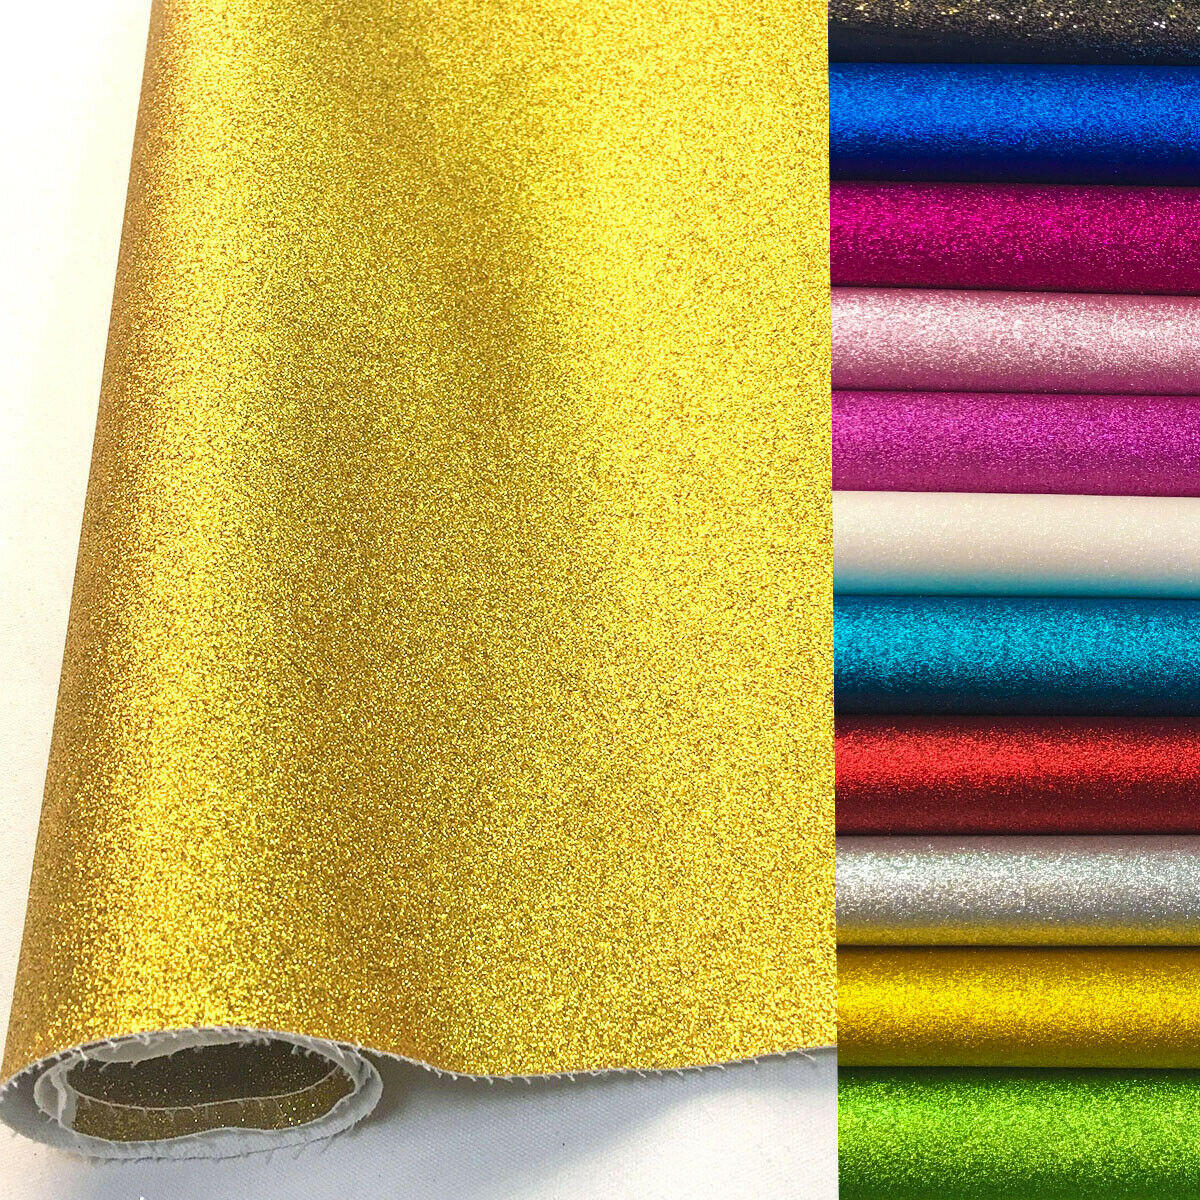 AliExpress - A4/20x135cm Frosted FINE Glitter Vinyl Fabric Sparkle Shiny iridescent  Faux Leather Craft DIY Material Bows Bag Decor Sheets